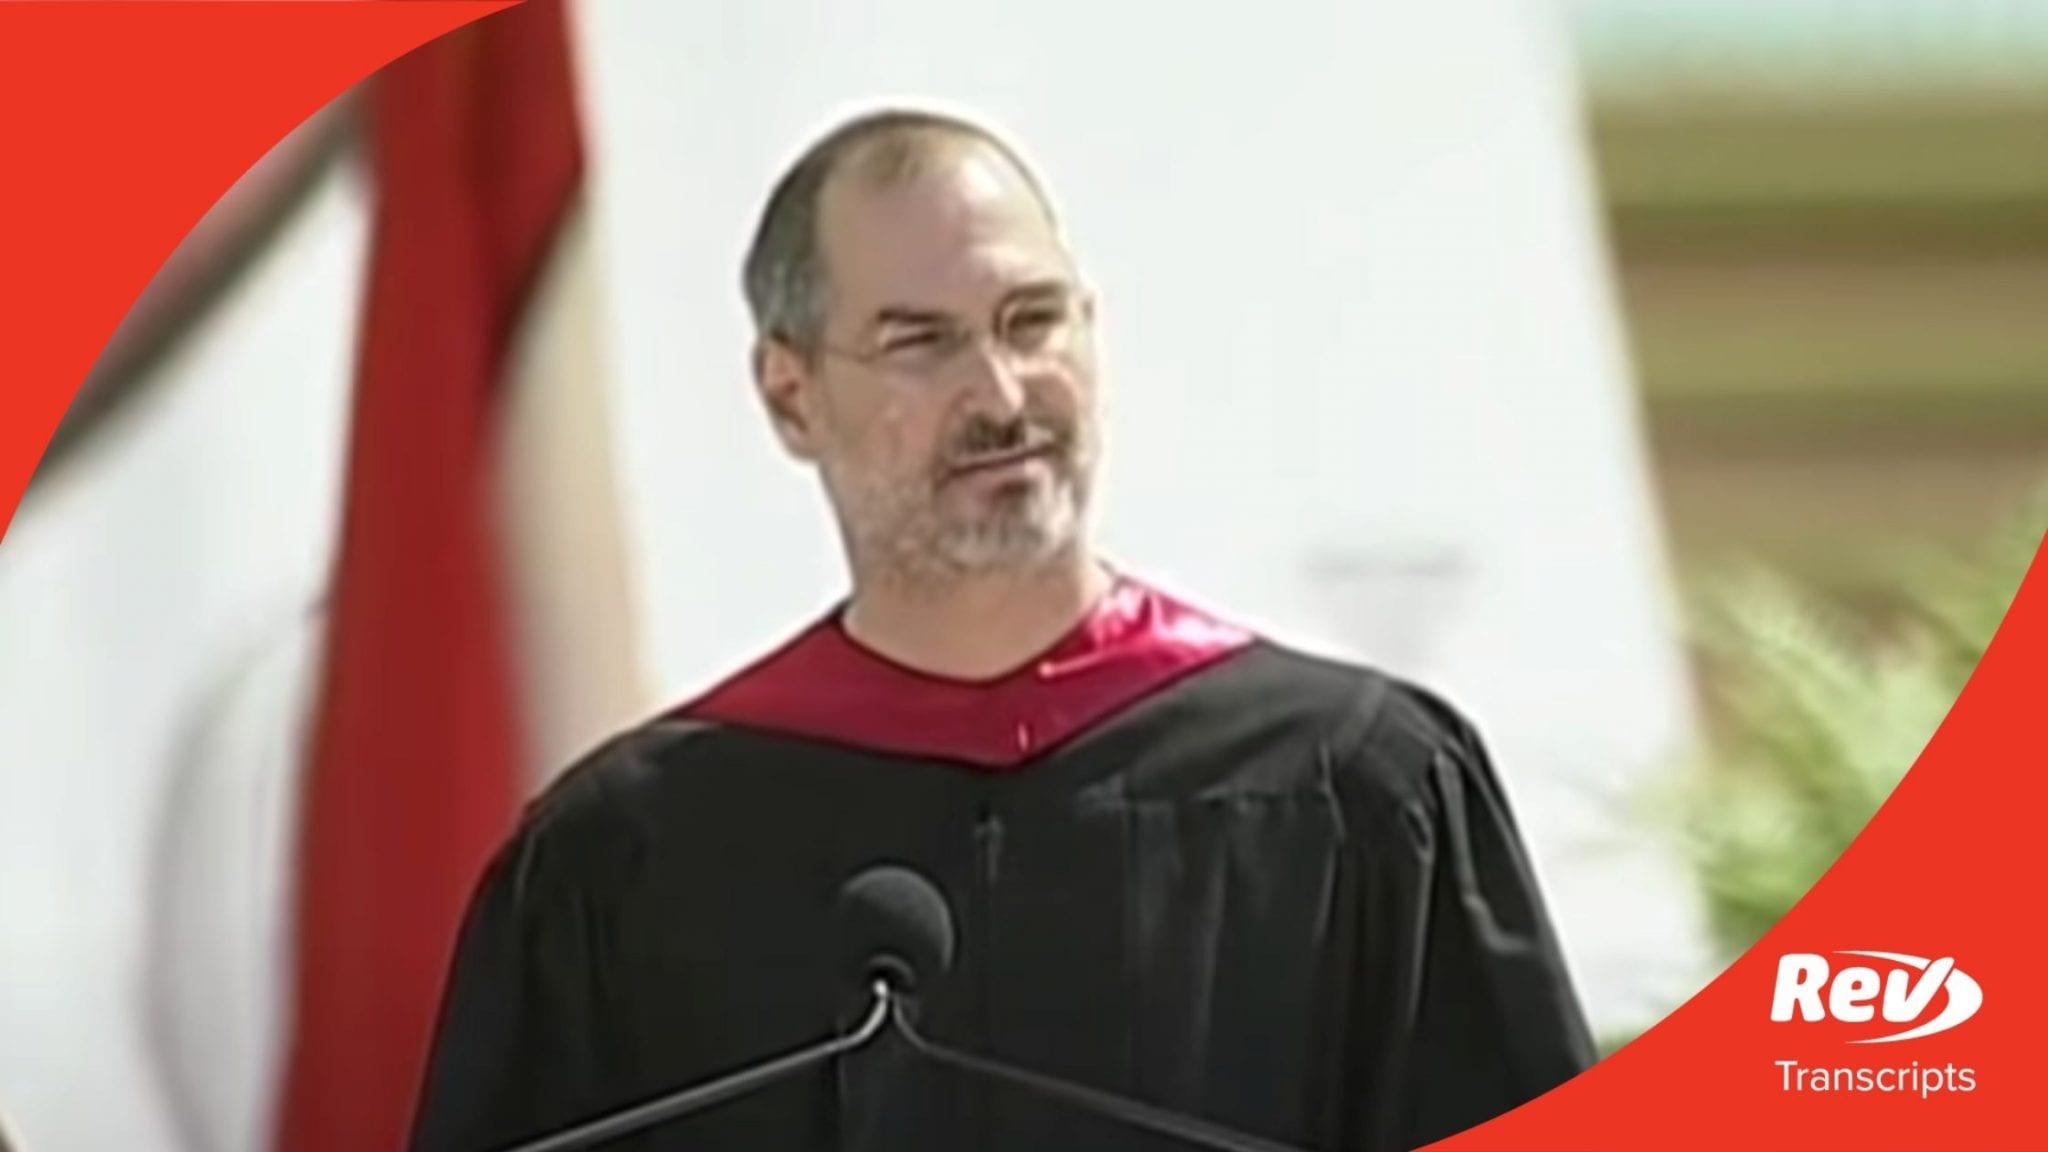 Steve Jobs 2005 Stanford Commencement Speech Transcript